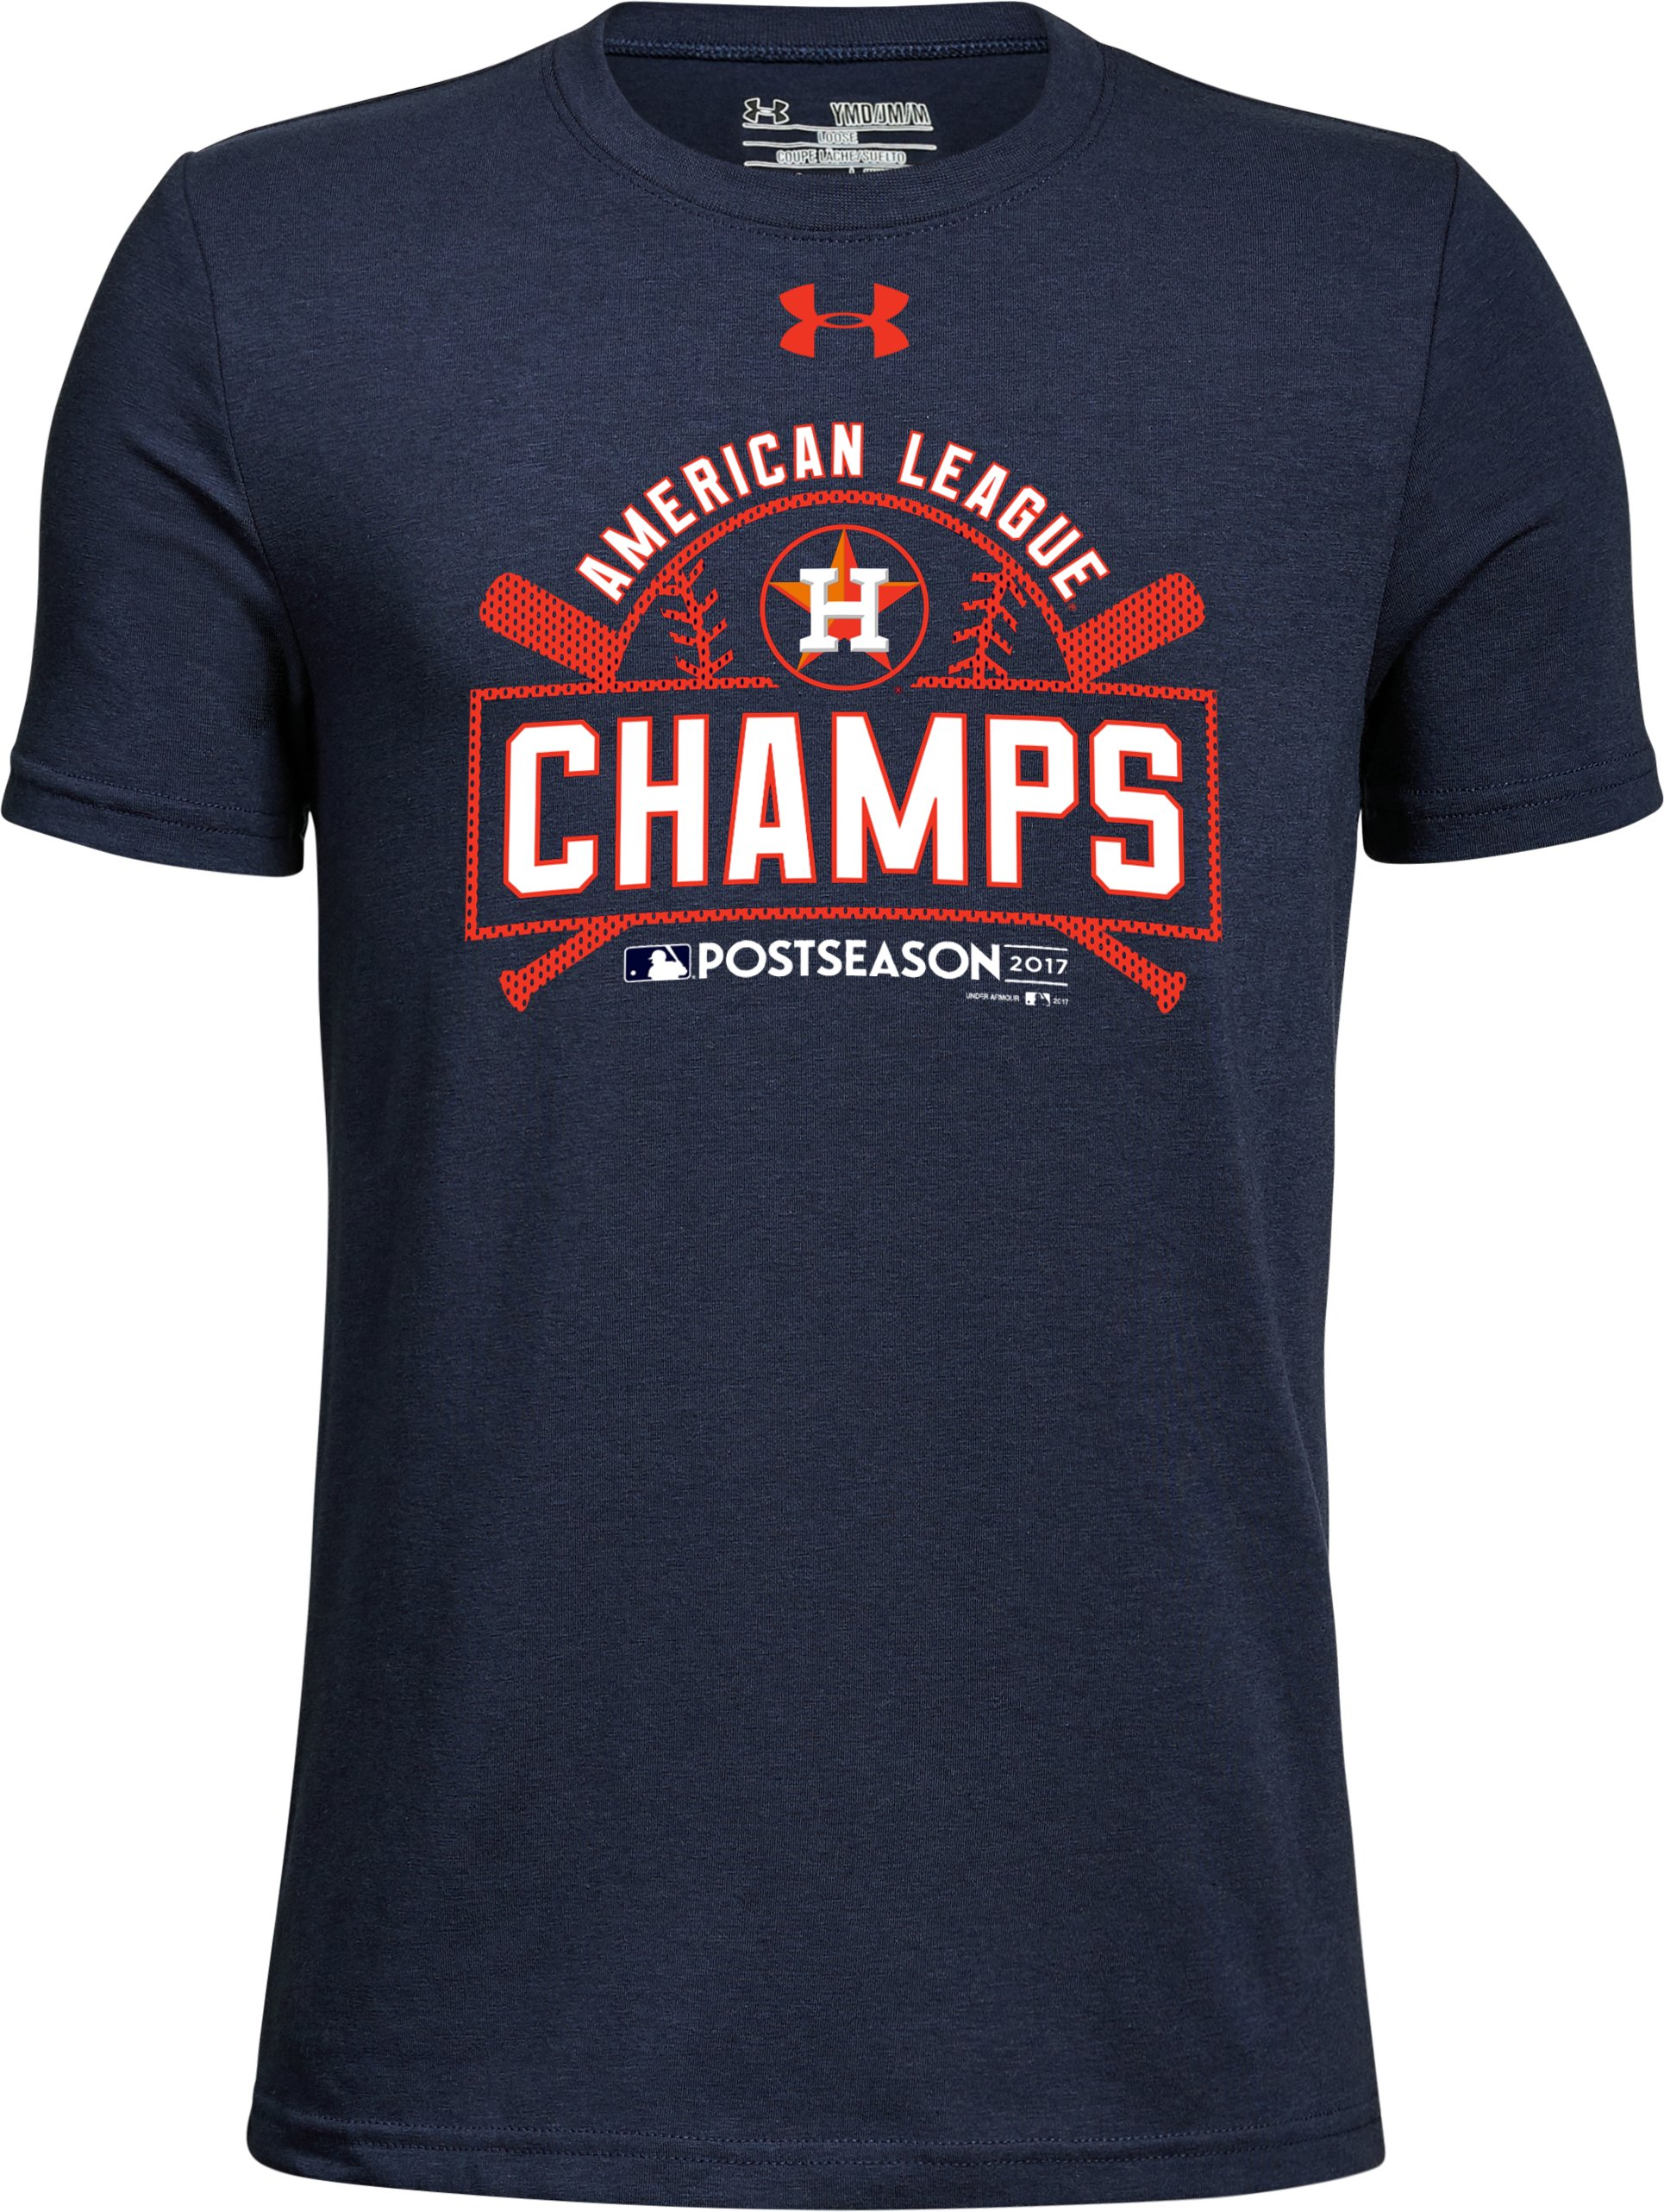 Youth Houston Astros League Champs T-Shirt, Midnight Navy